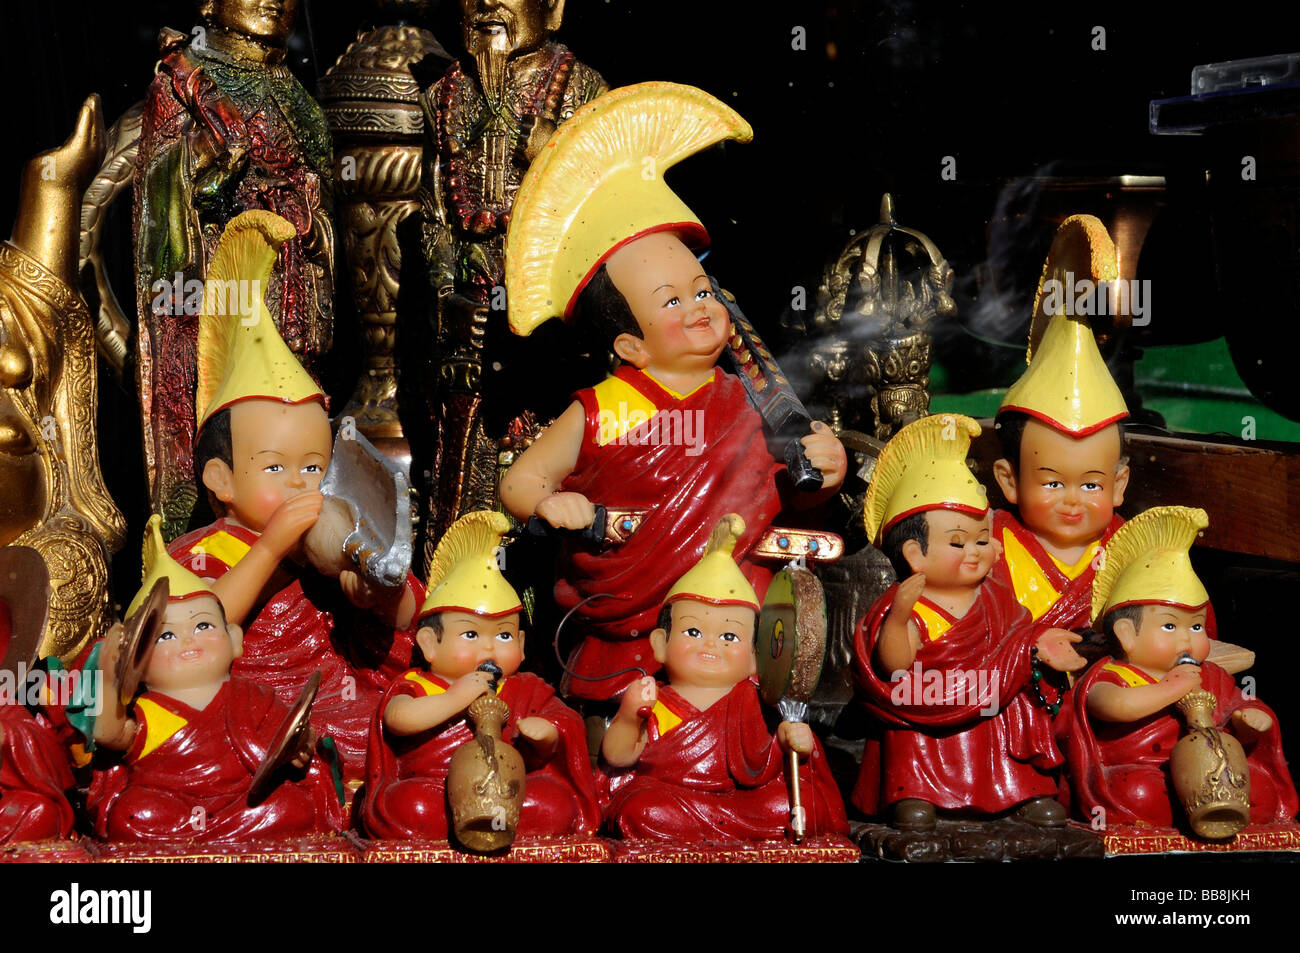 Kitschy Daja Lama figures in a shop window, Leh, Ladakh, North India, Himalayas, Asia - Stock Image